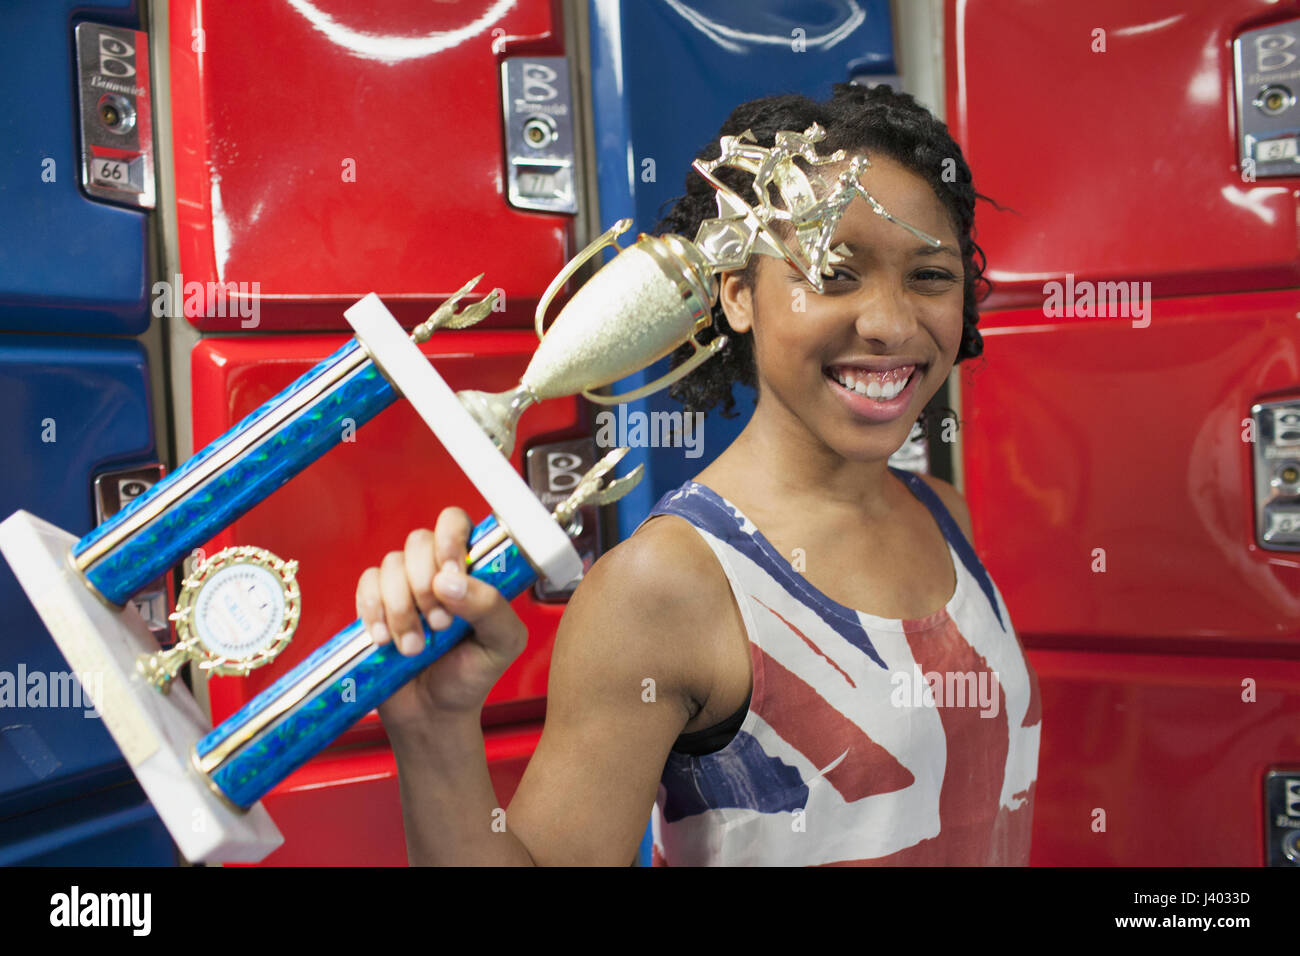 A young woman with a trophy in fornt of red and blue lockers. - Stock Image